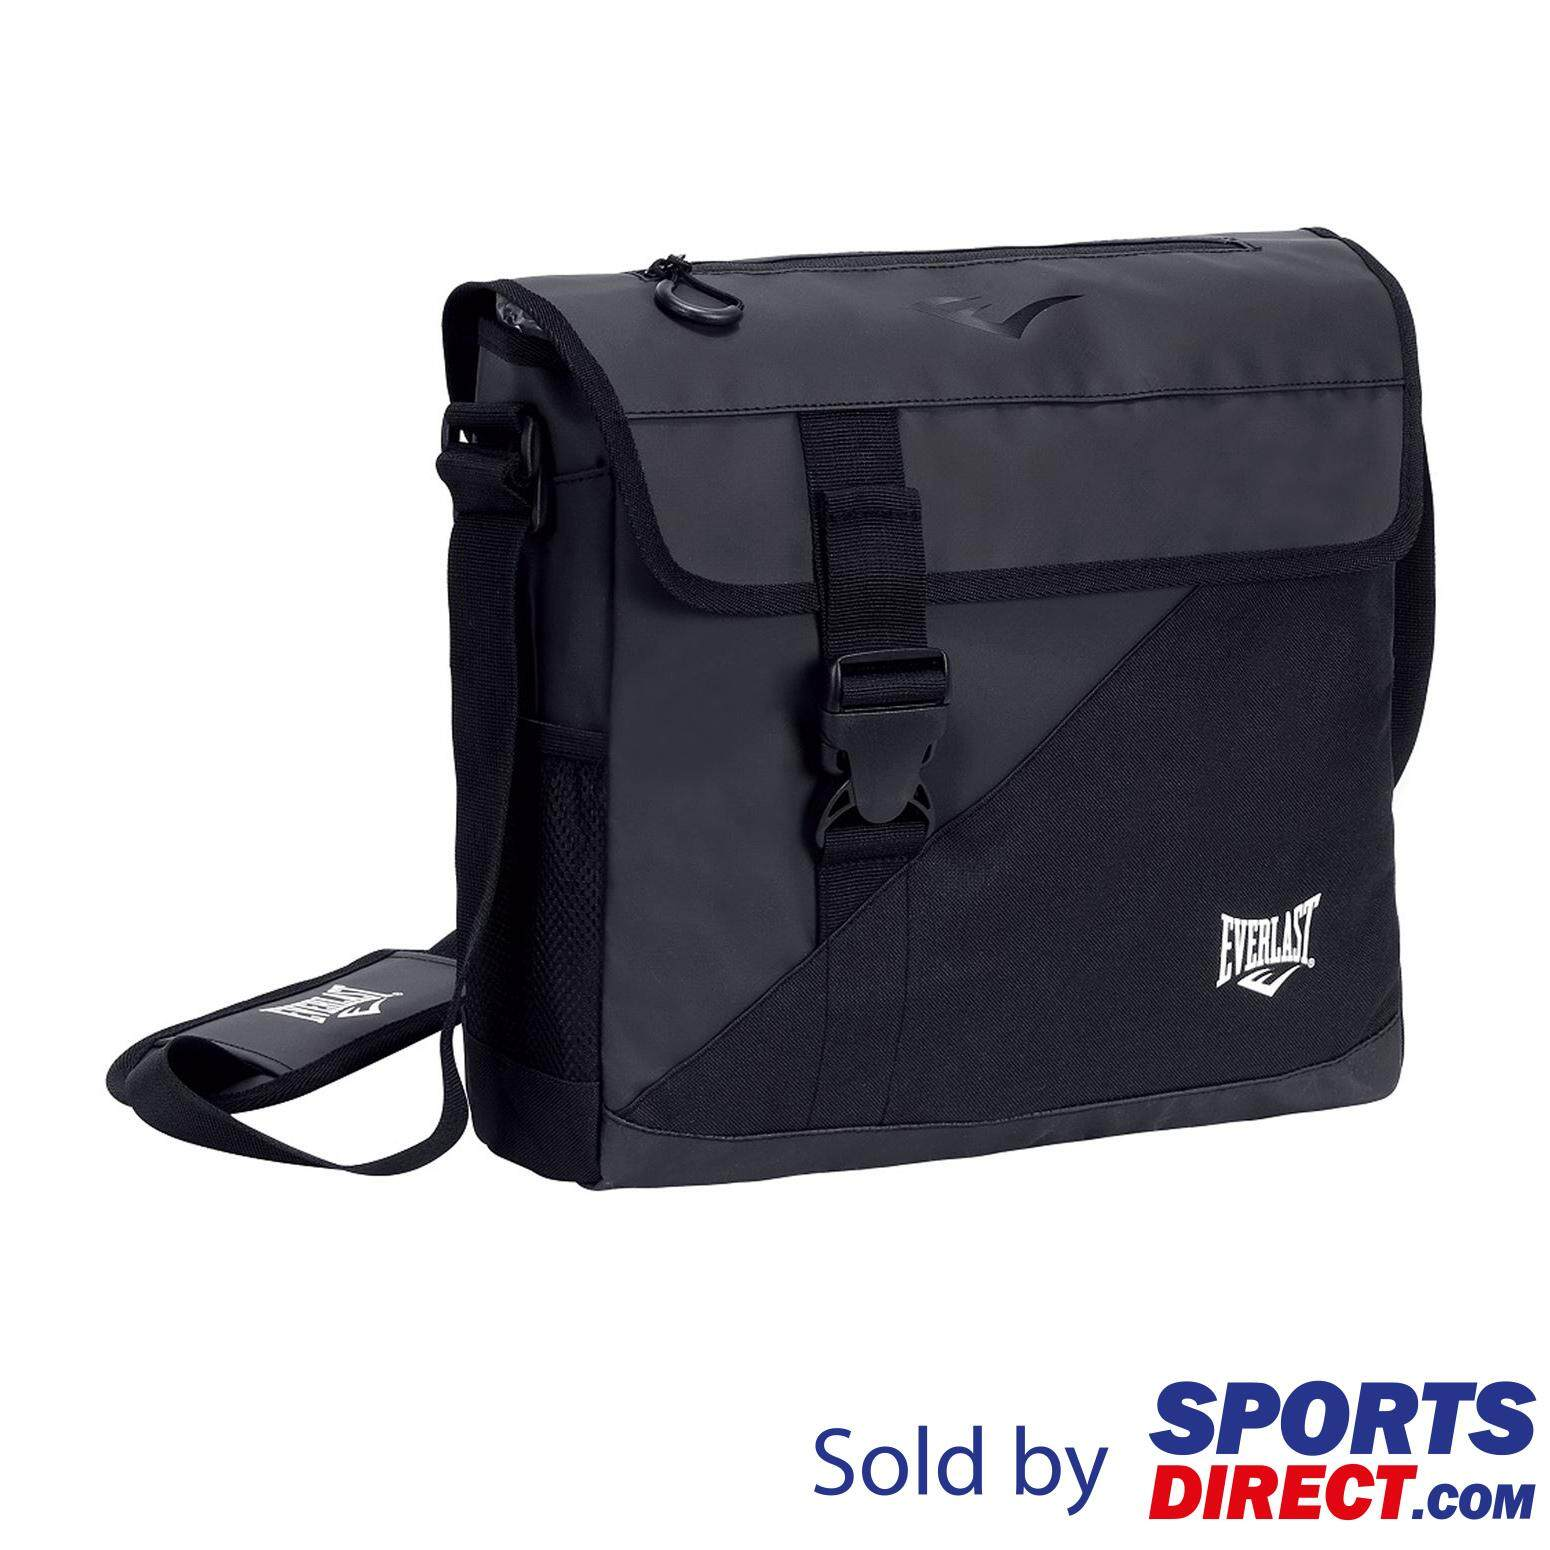 30454e7c47c2 Men s Sports Bags - Buy Men s Sports Bags at Best Price in Malaysia ...